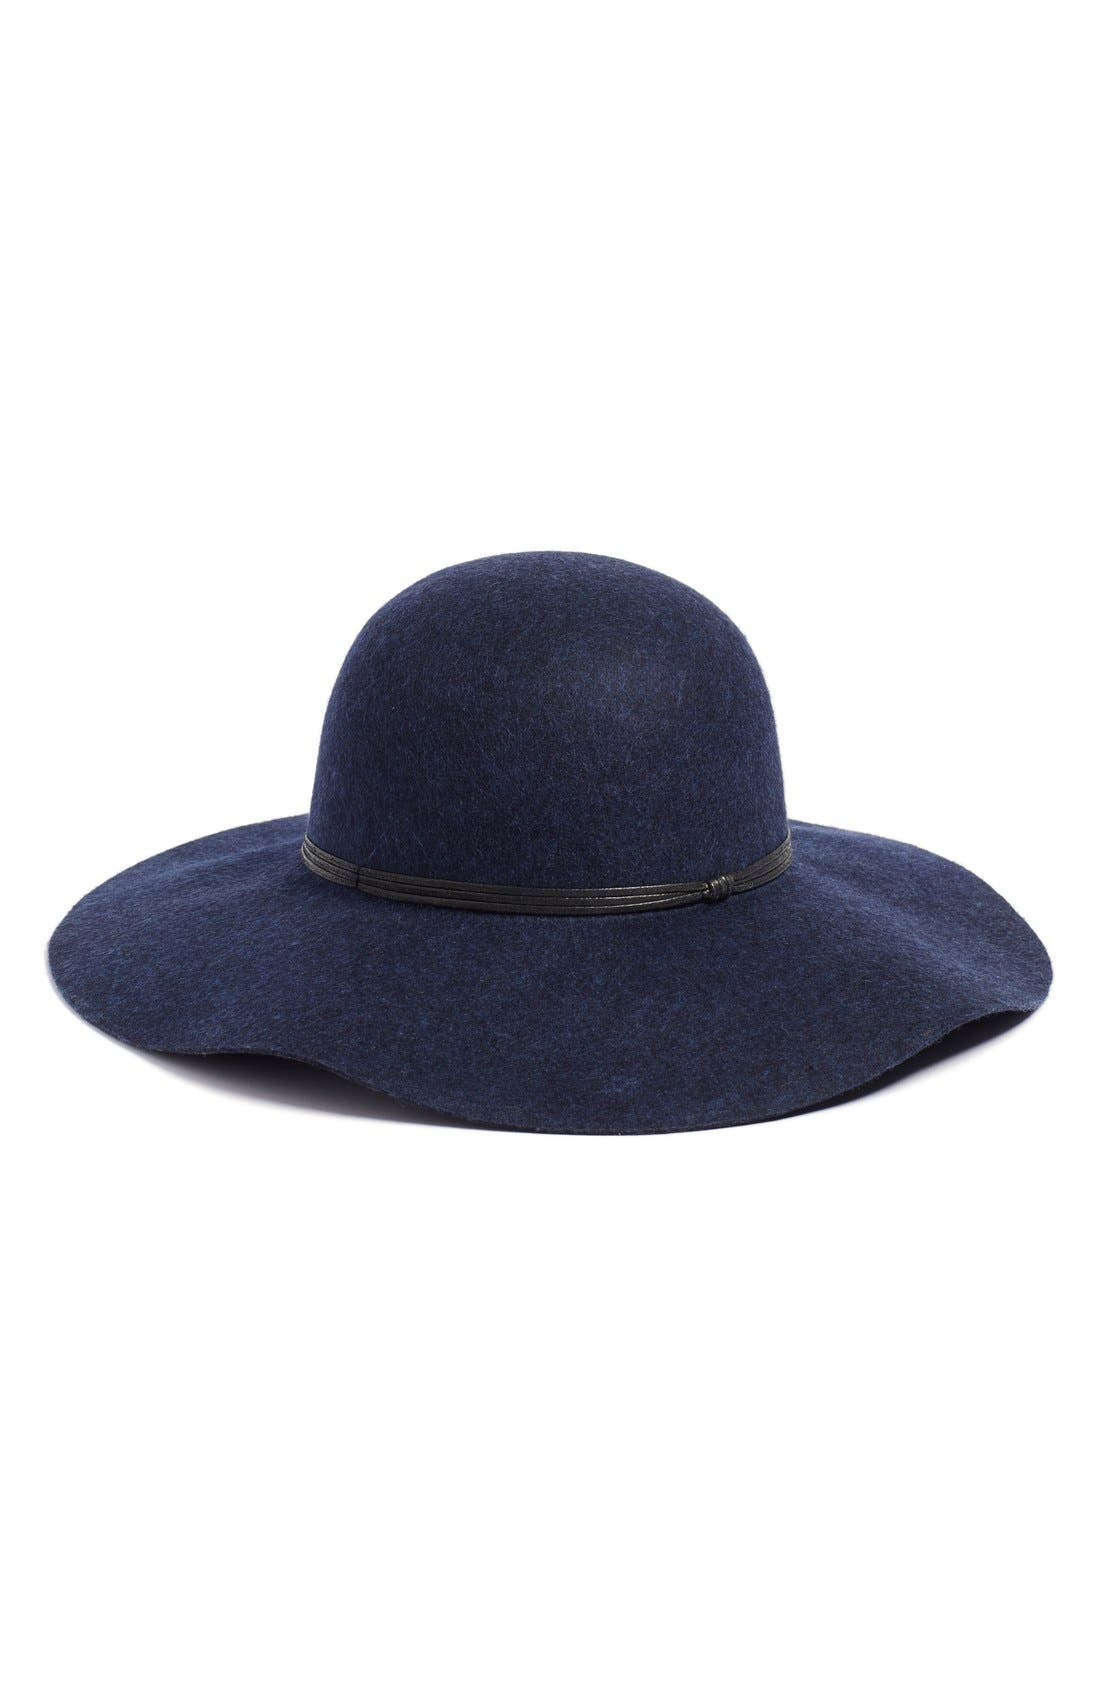 Main Image - Hinge Floppy Wool Hat